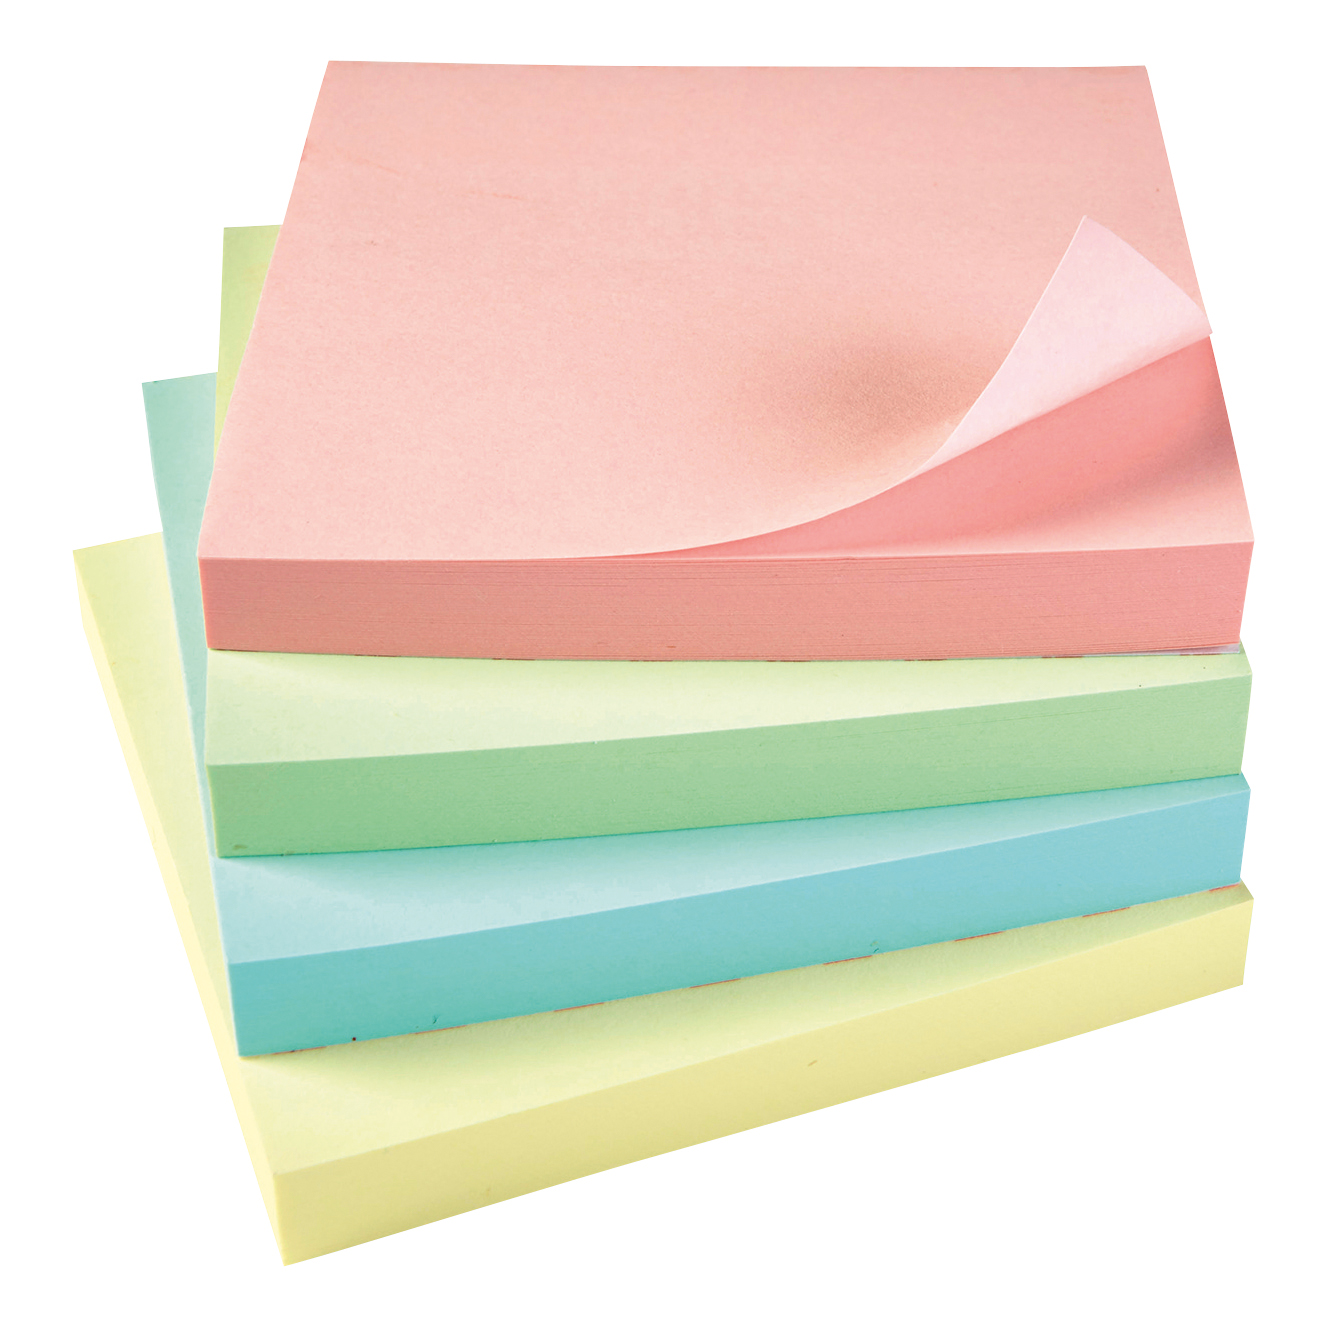 5 Star Office Re-Move Notes Repositionable Pastel Pad of 100 Sheets 76x76mm Assorted Pack 12